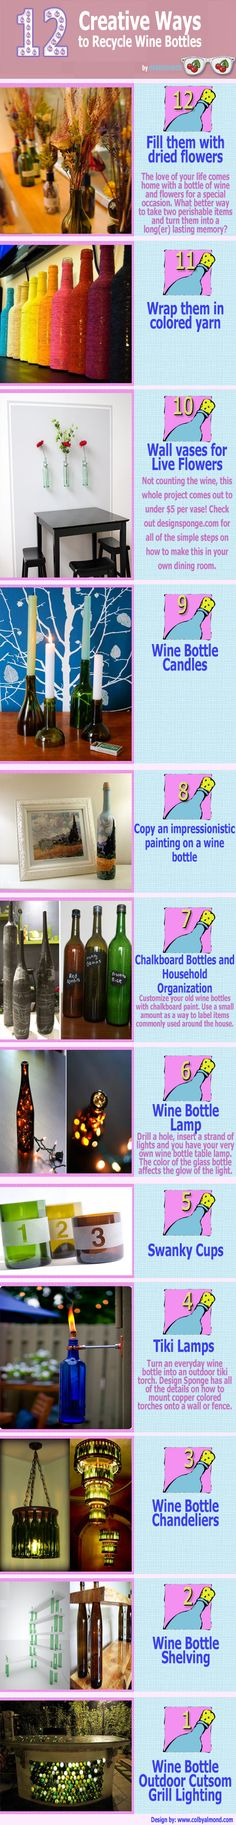 Wine Bottle Decorations!